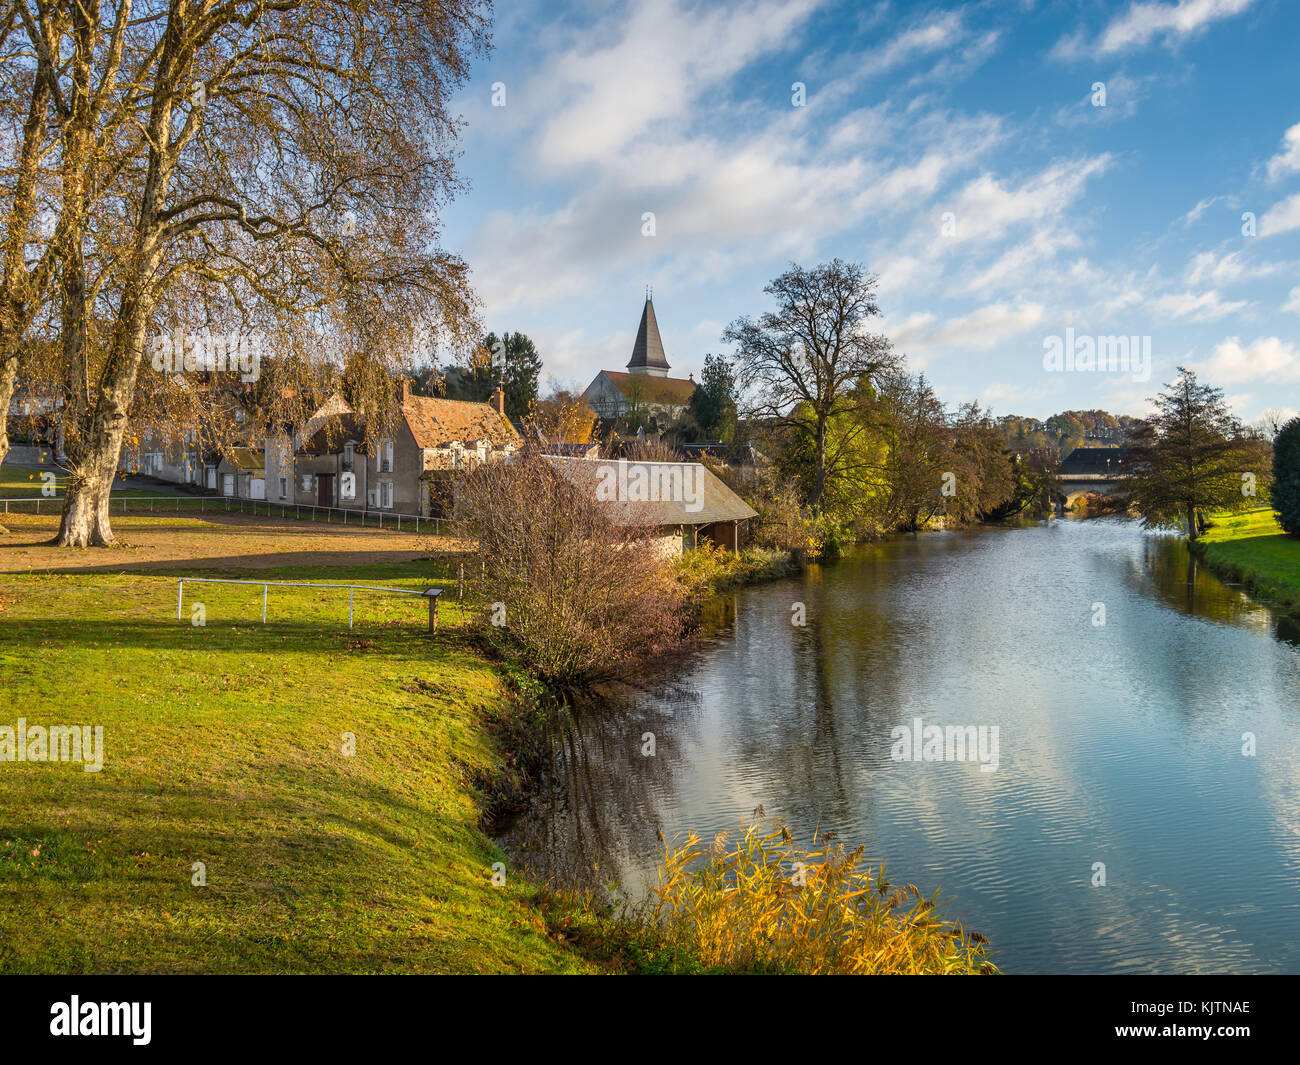 Riverside view of Preuilly-sur-Claise, France. - Stock Image